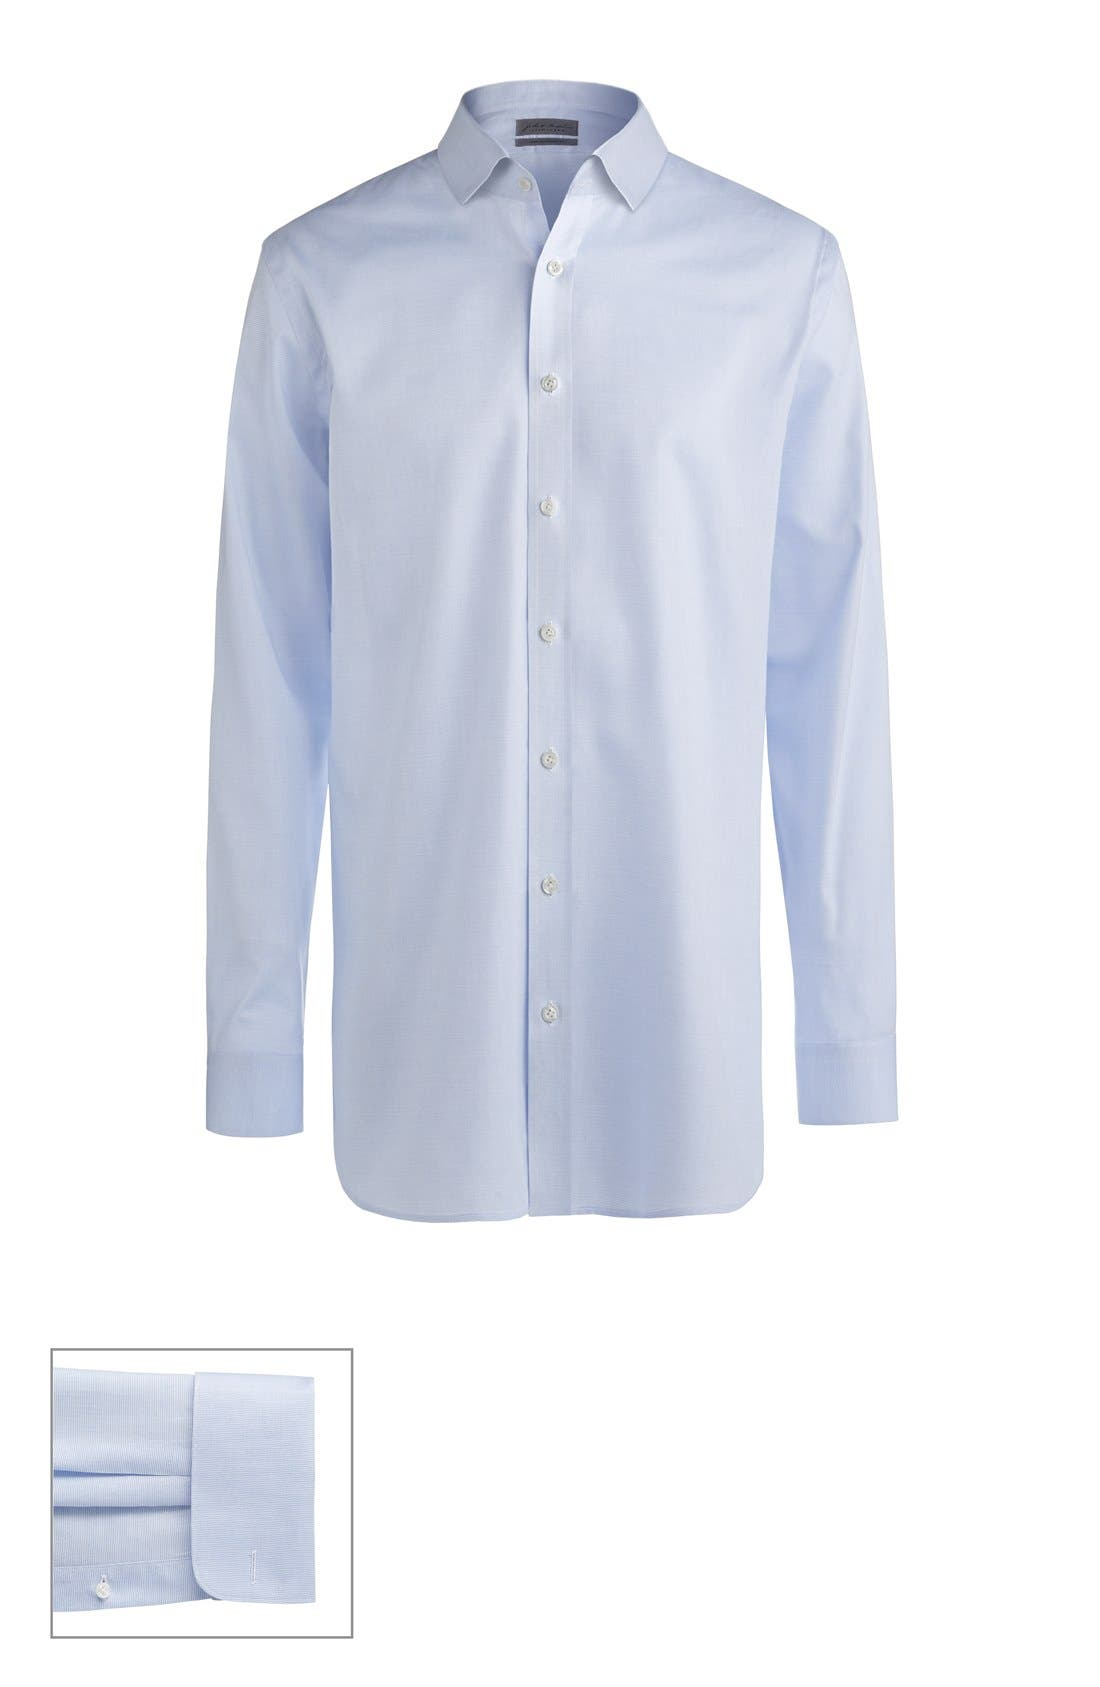 Made to Measure Extra Trim Fit Short Spread Collar Dobby Dress Shirt,                             Main thumbnail 1, color,                             Blue Micro Texture